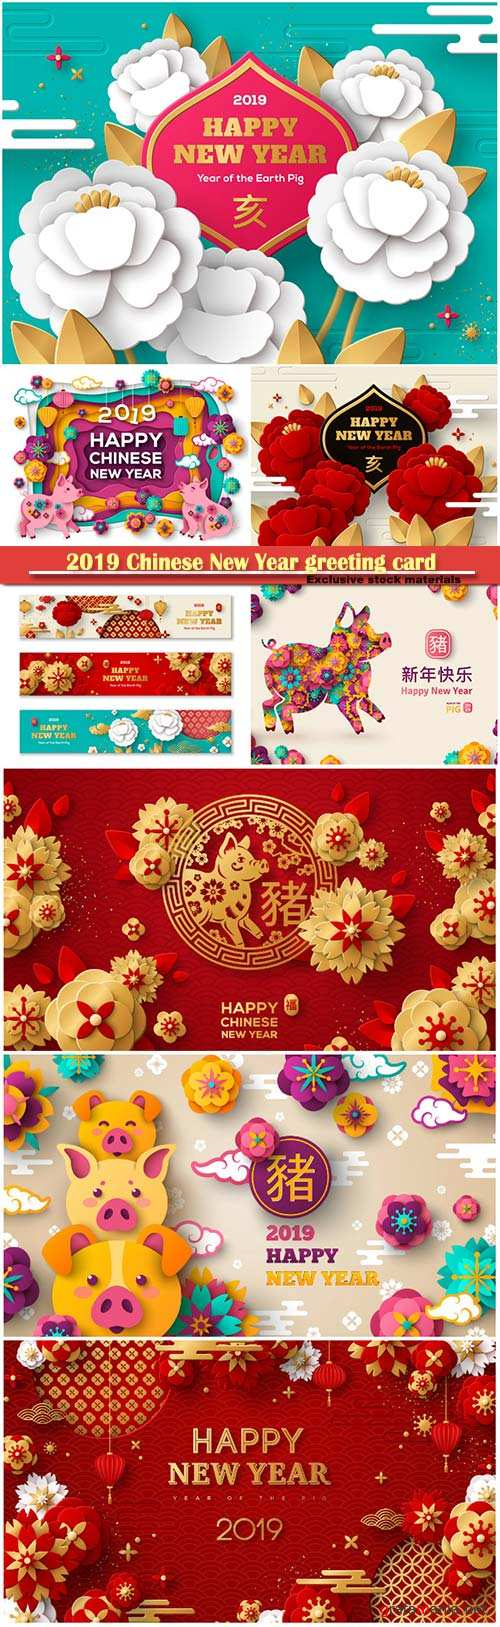 2019 Chinese New Year greeting card, happy New Year illustration